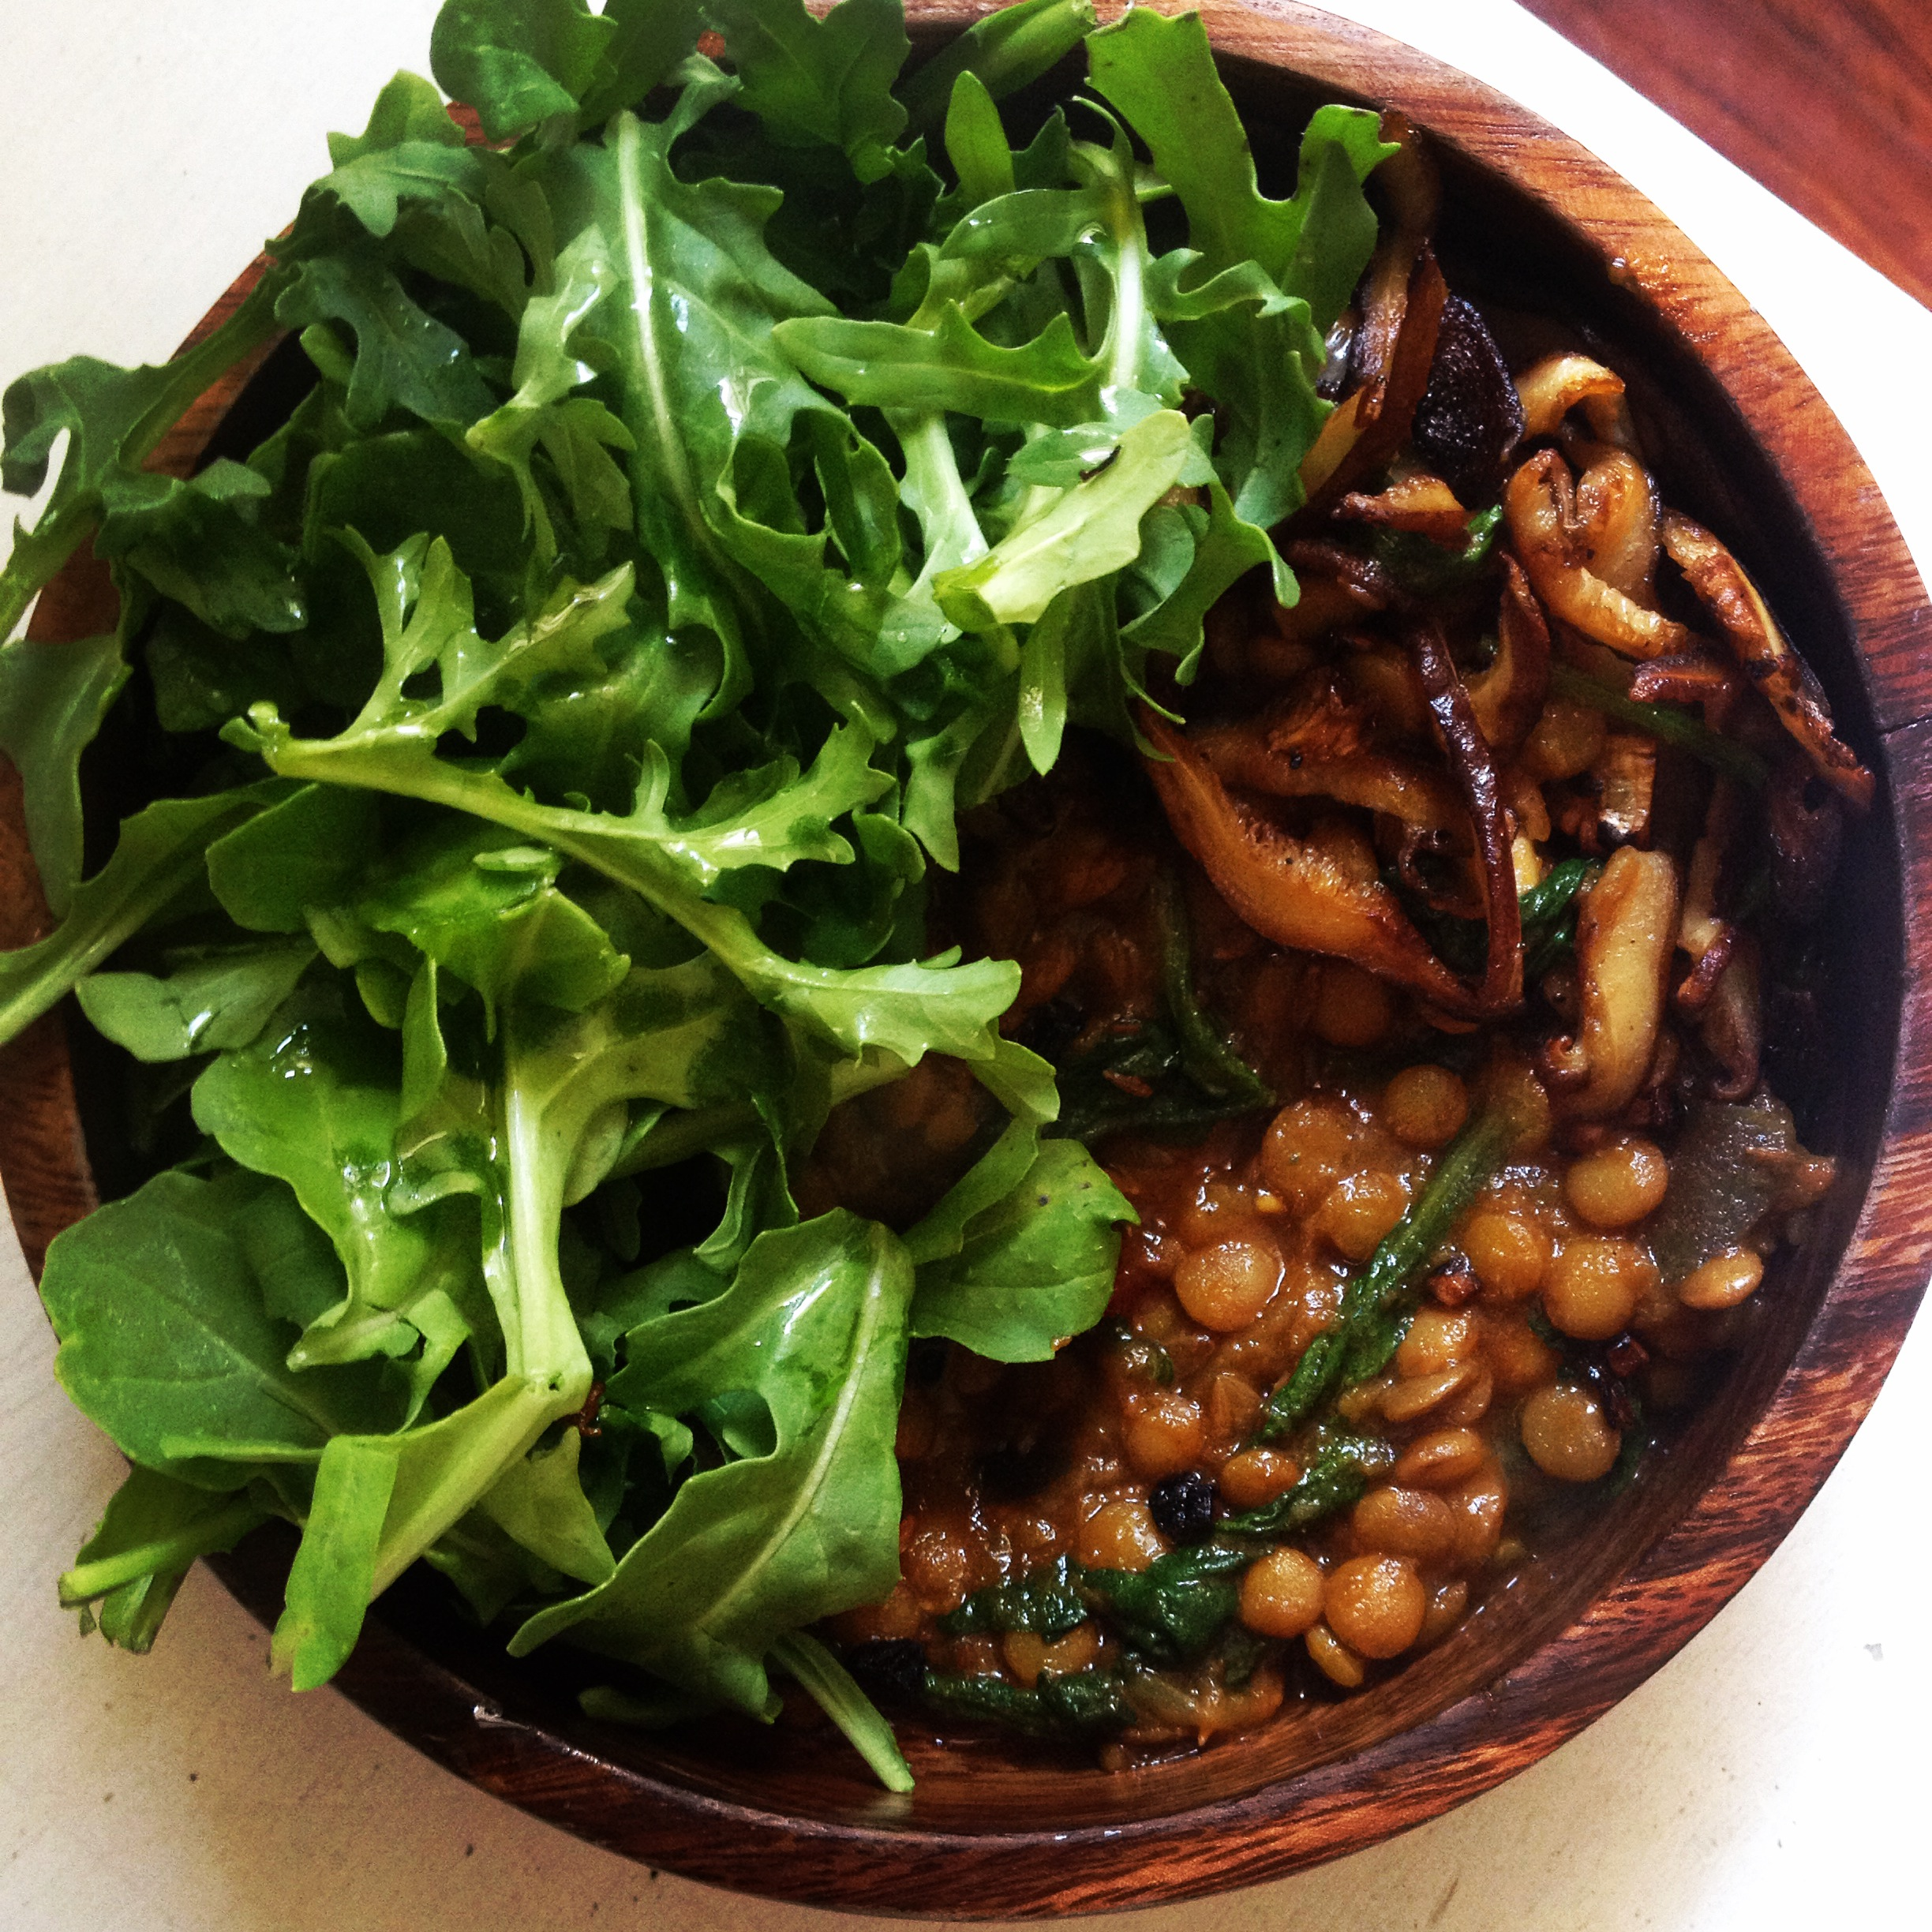 Curry lentils with eggplant, tomato and spinach